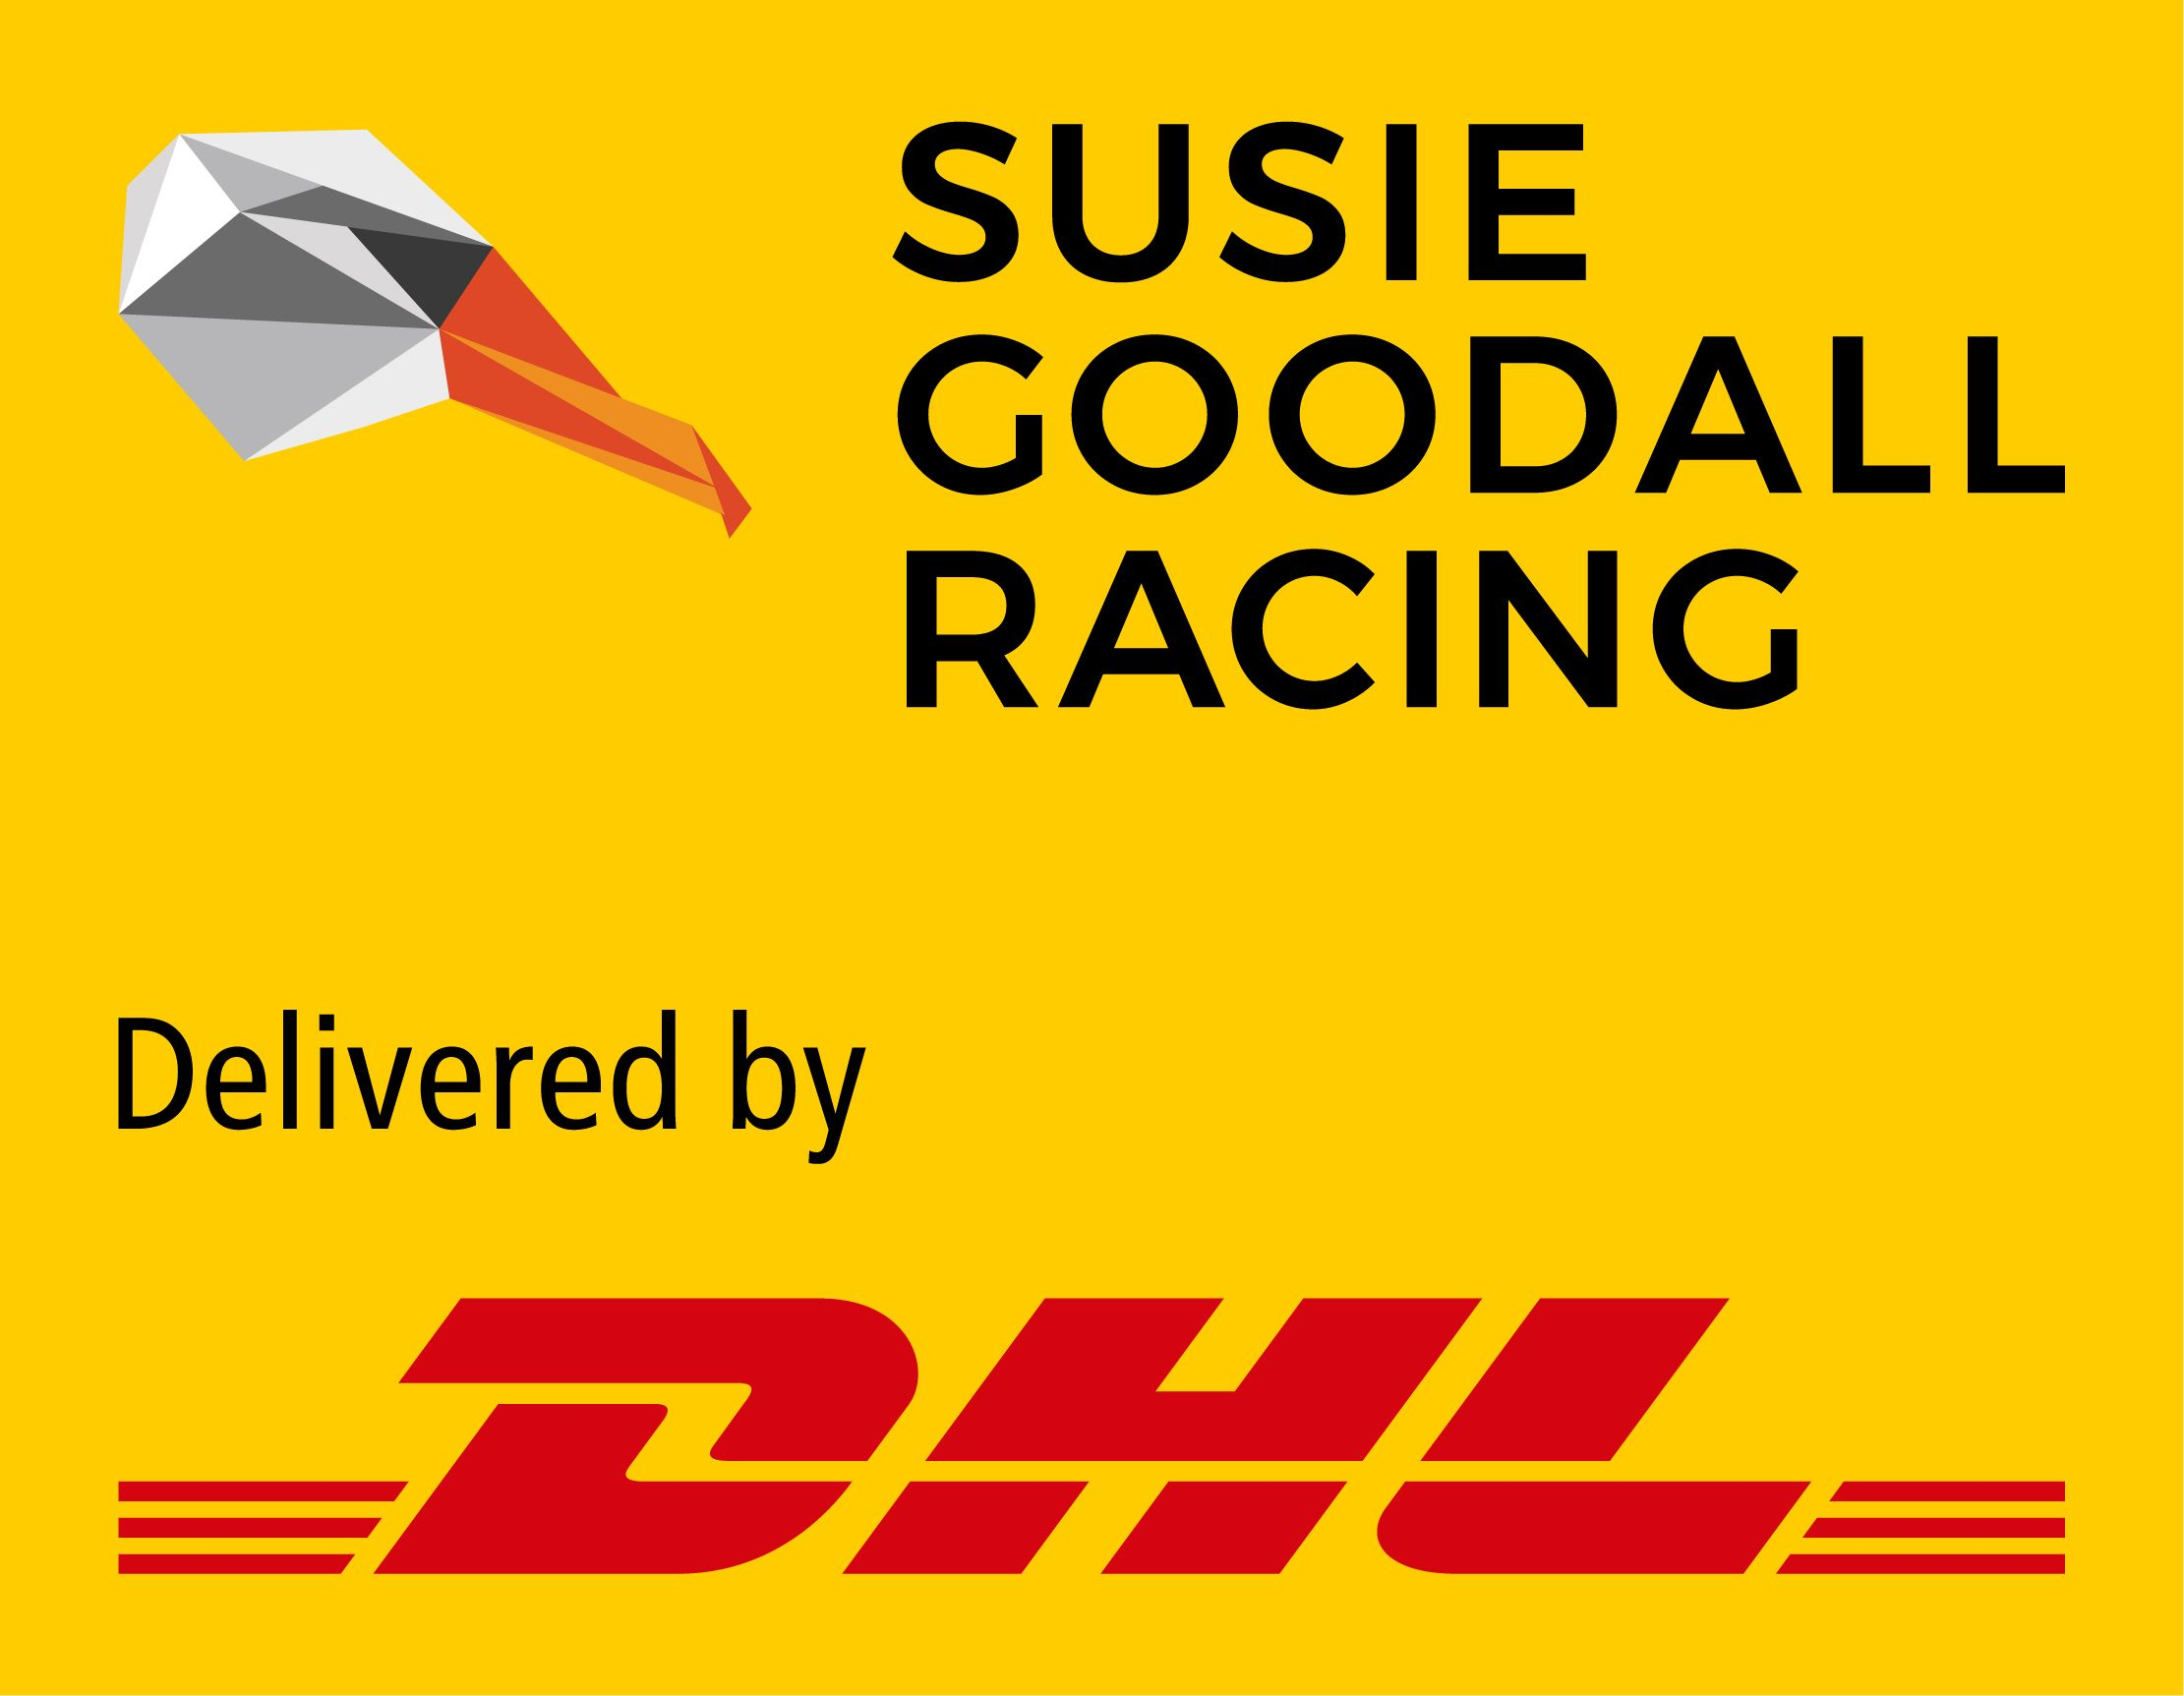 DHL Logo - Susie Goodall secures DHL as primary sponsor - Golden Globe Race